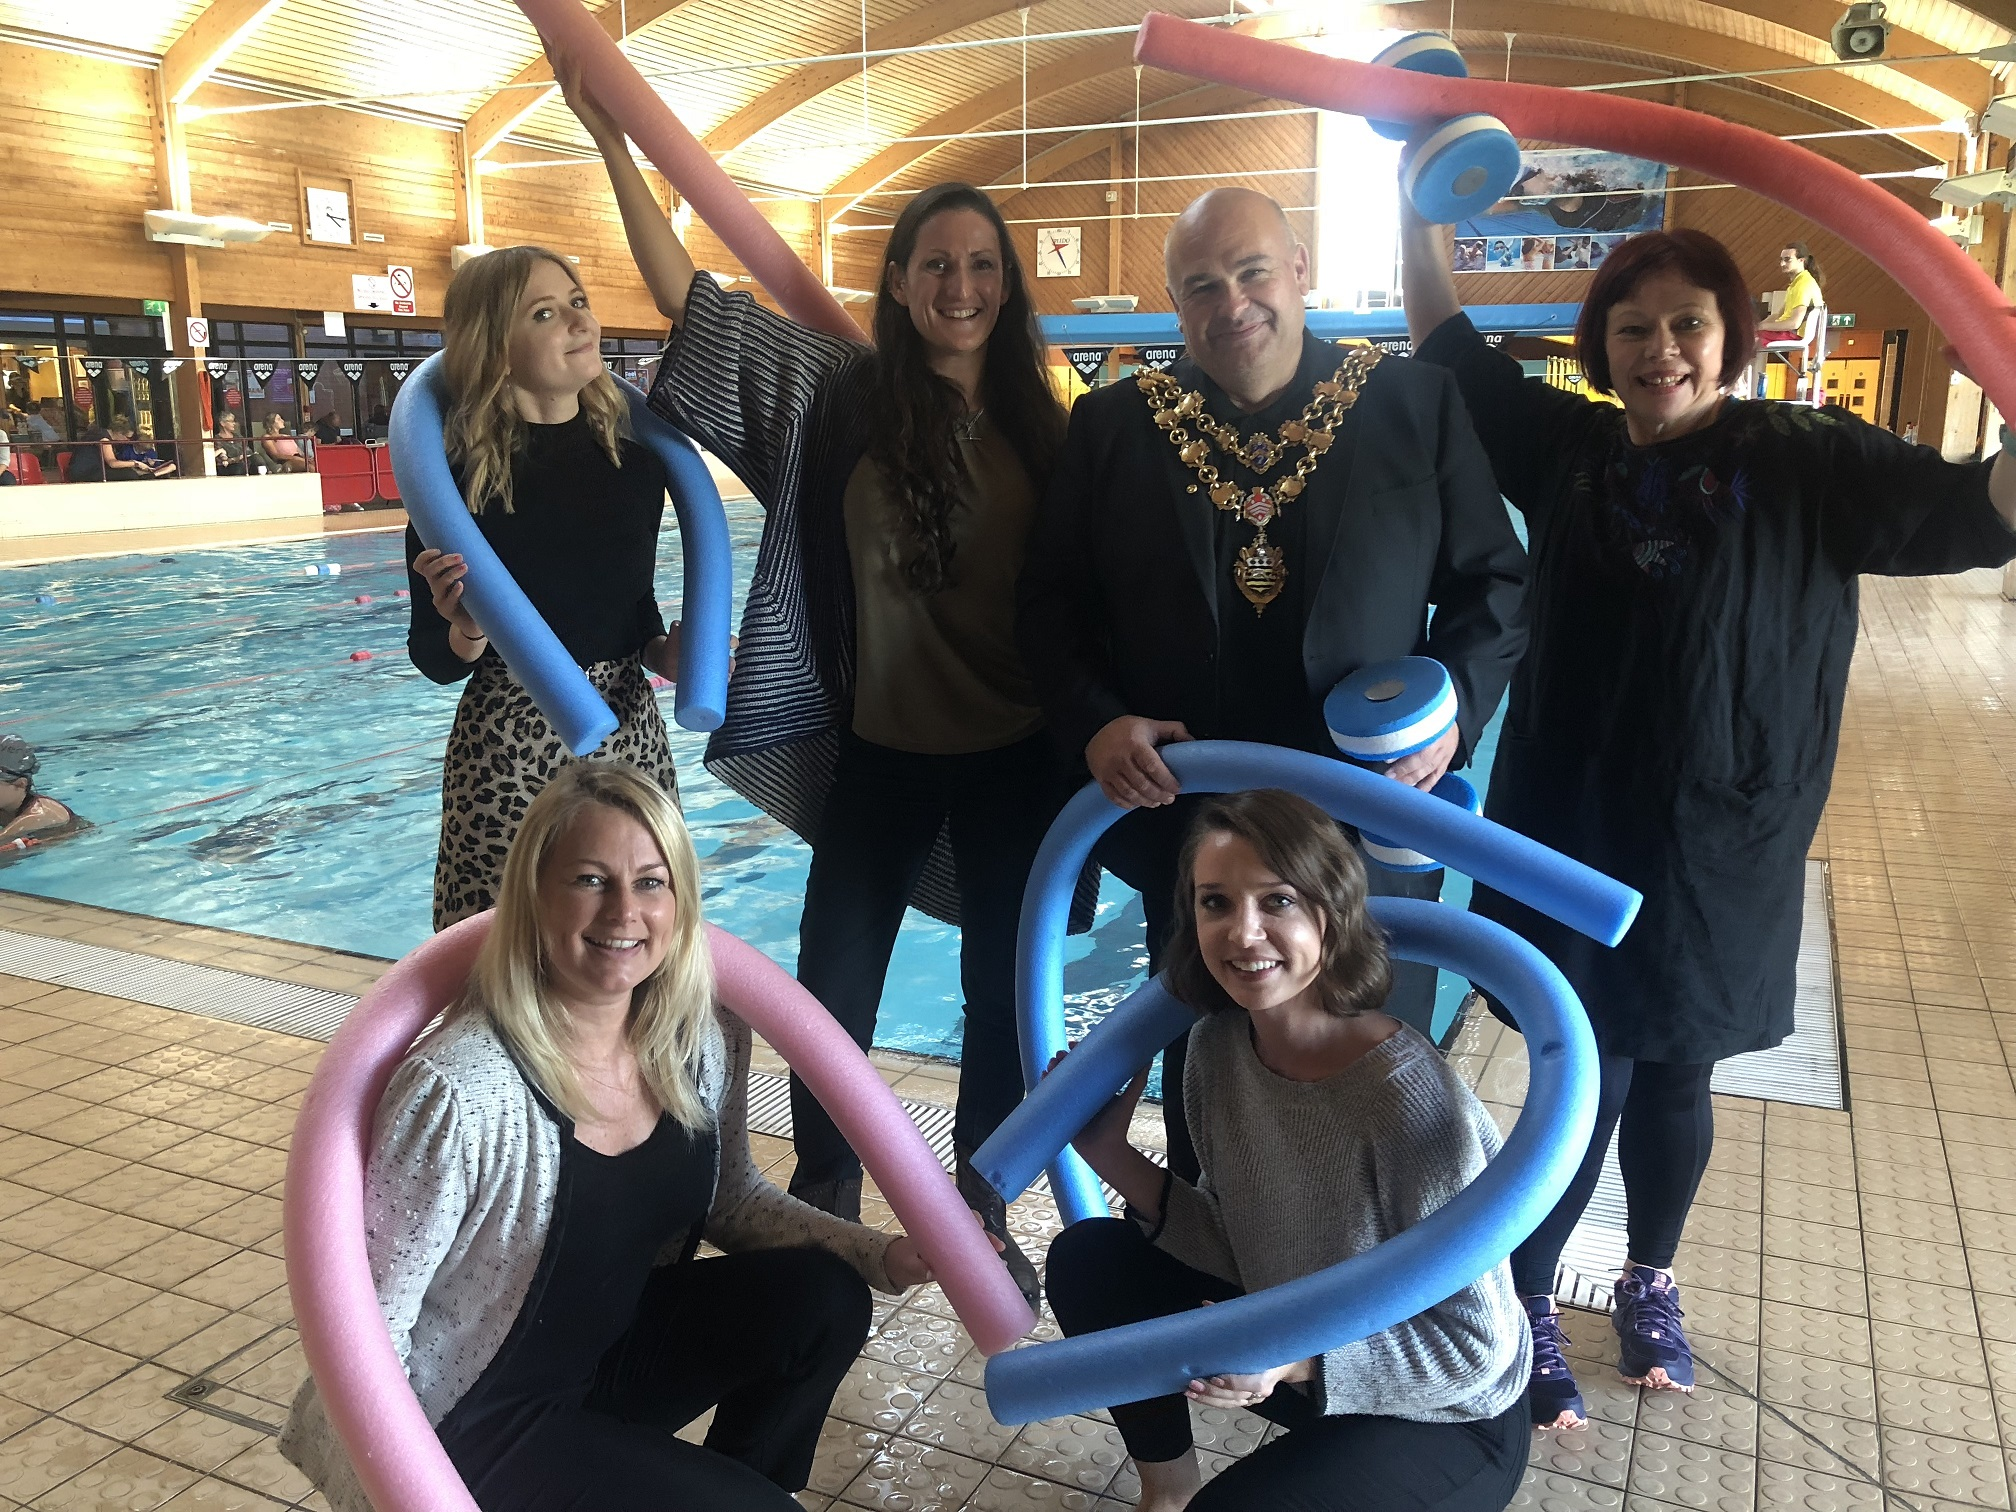 Launching Take on Me at Rossmore Leisure Centre: Top L-R: Perdie Bargh (Lighthouse), Gemma Alldred (Dante or Die), Sean Gabriel (General Manager Rossmore Leisure Centre & Mayor of Poole), Fiona Watson (Dante or Die). Bottom L-R: Lynda Barber (Lighthouse) and Jodie Watkins (Lighthouse)